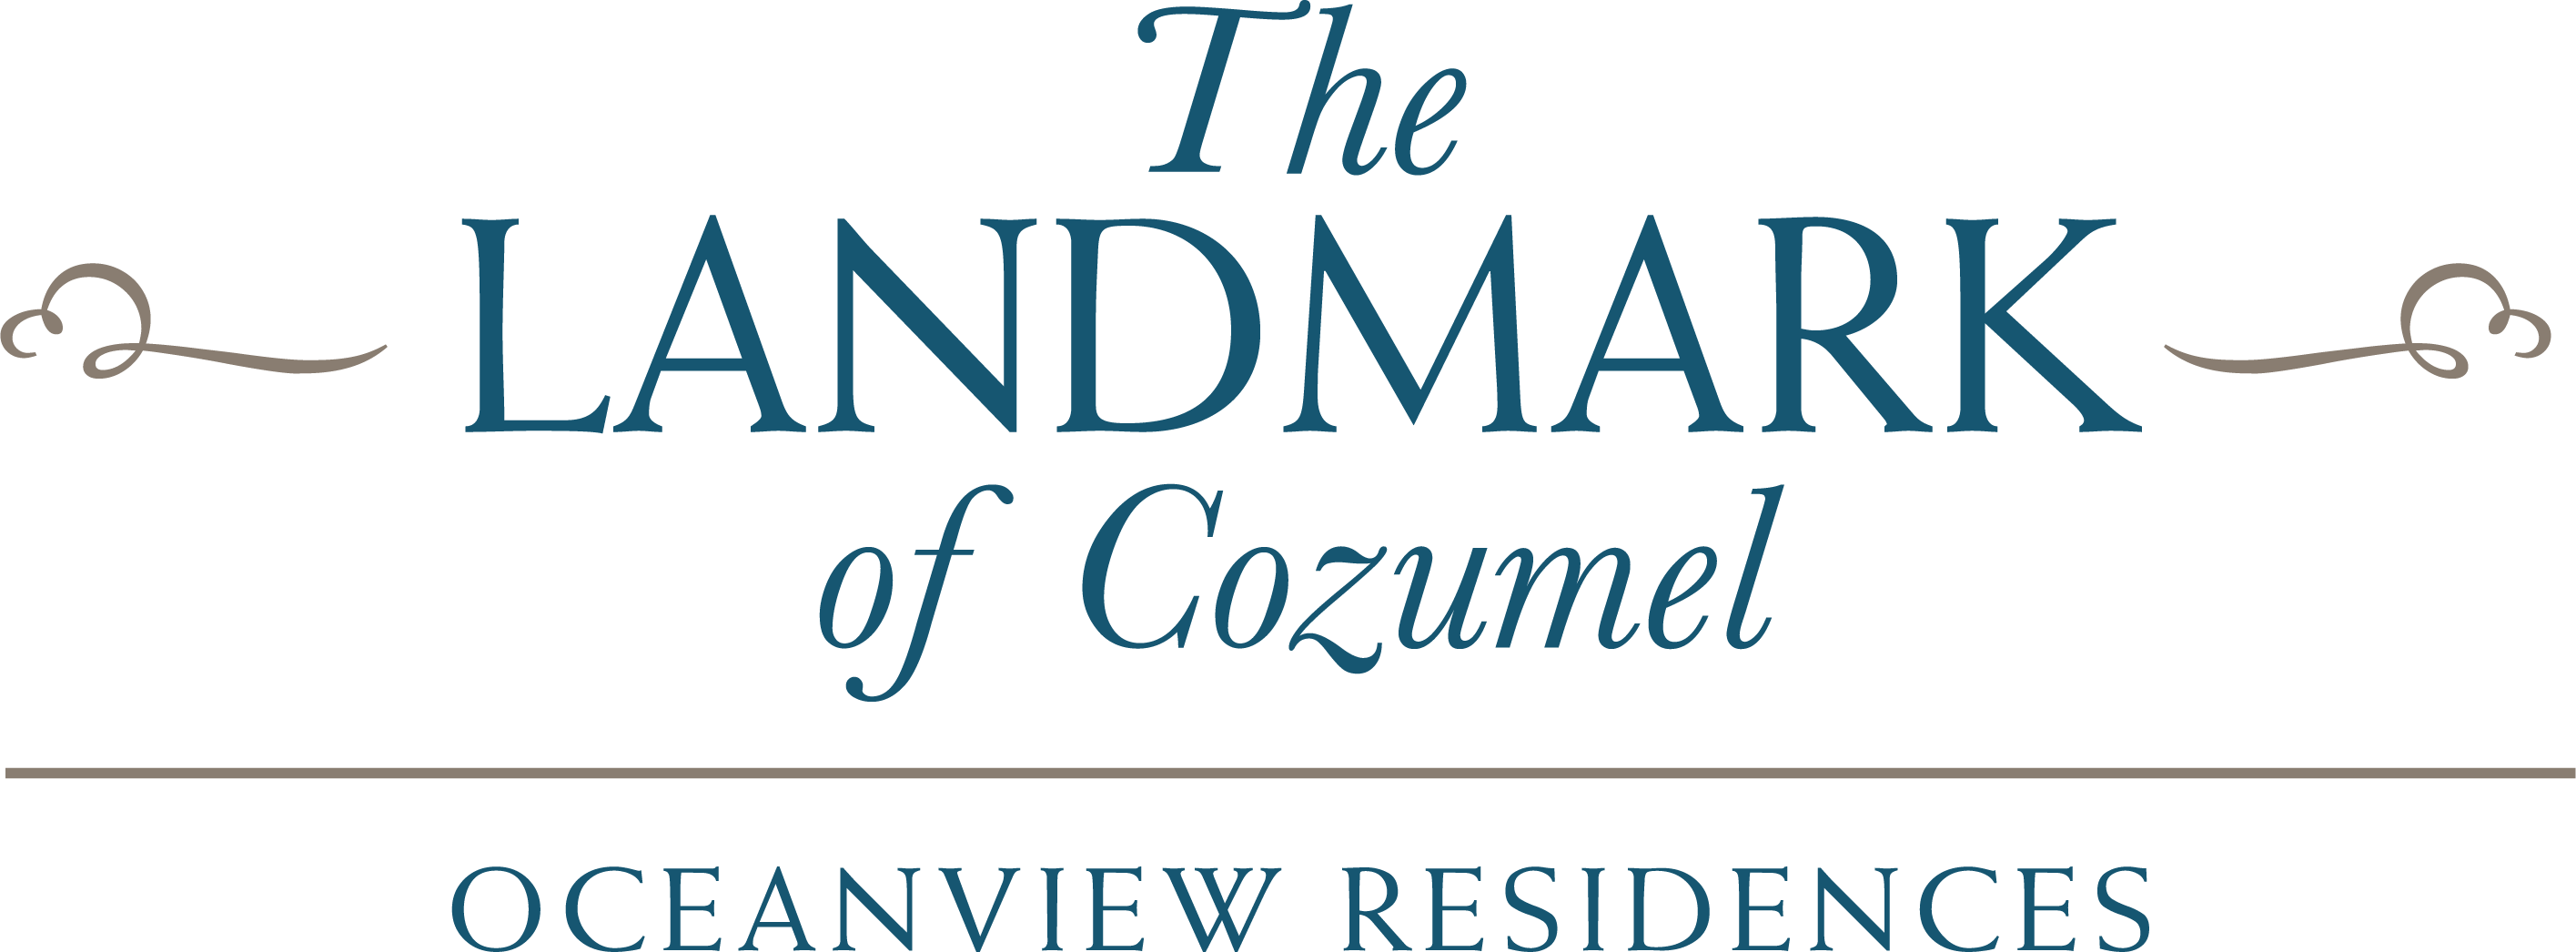 The Landmark of Cozumel Residences